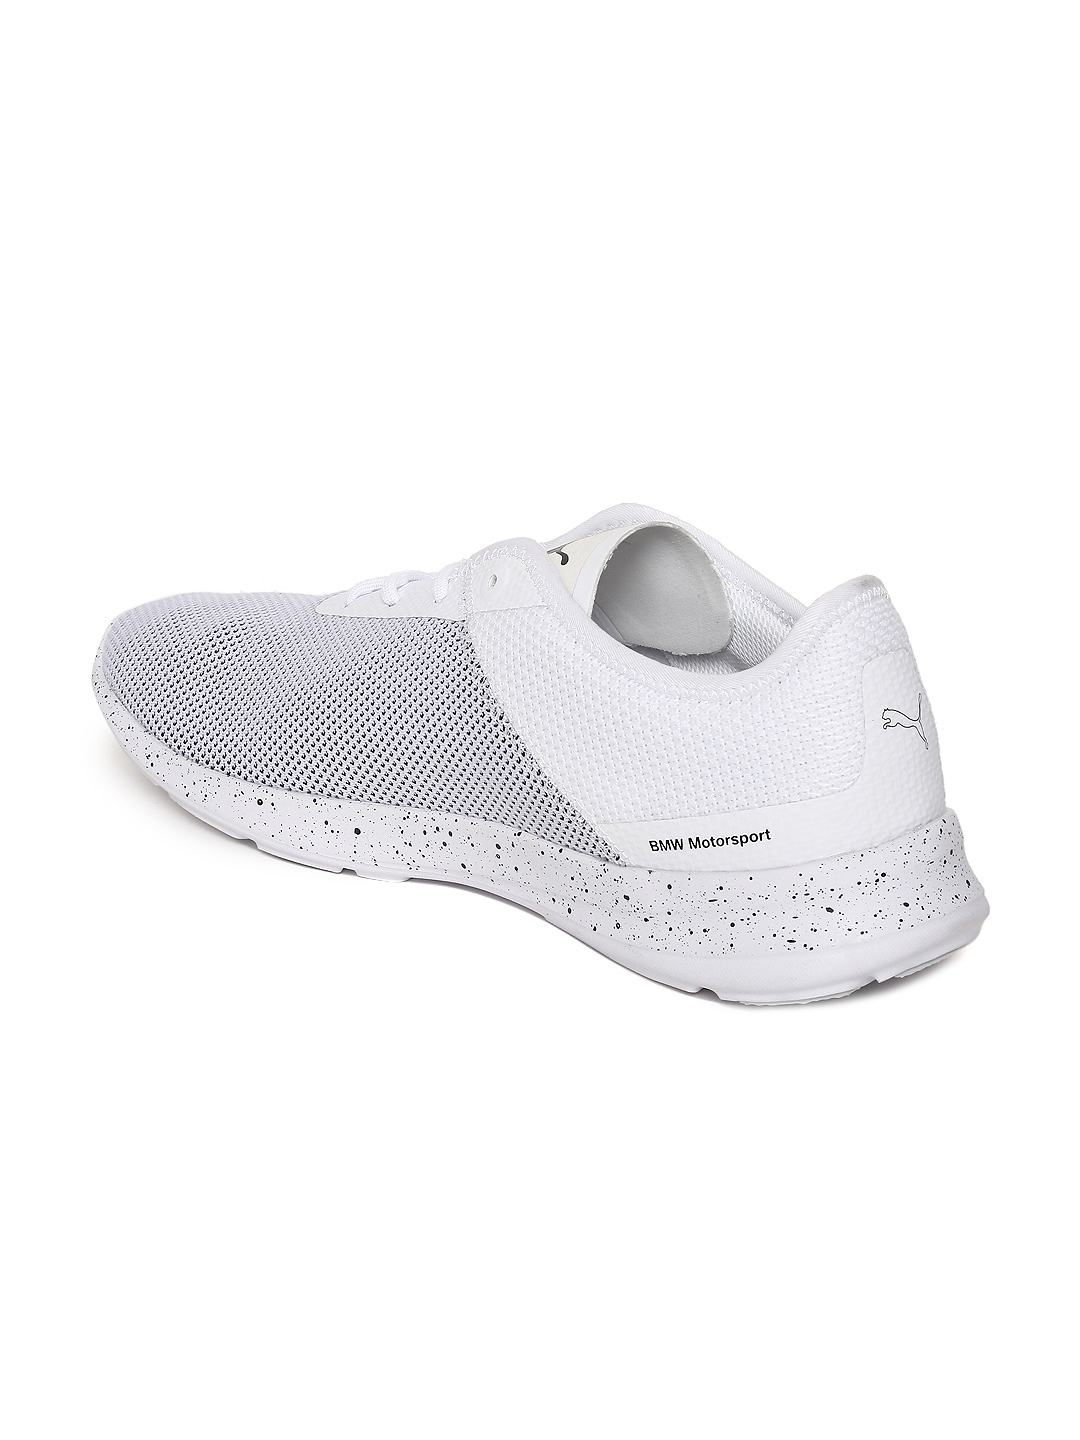 5bd08cebc33 Buy Puma Men White BMW MS Runner Sneakers - Casual Shoes for Men ...